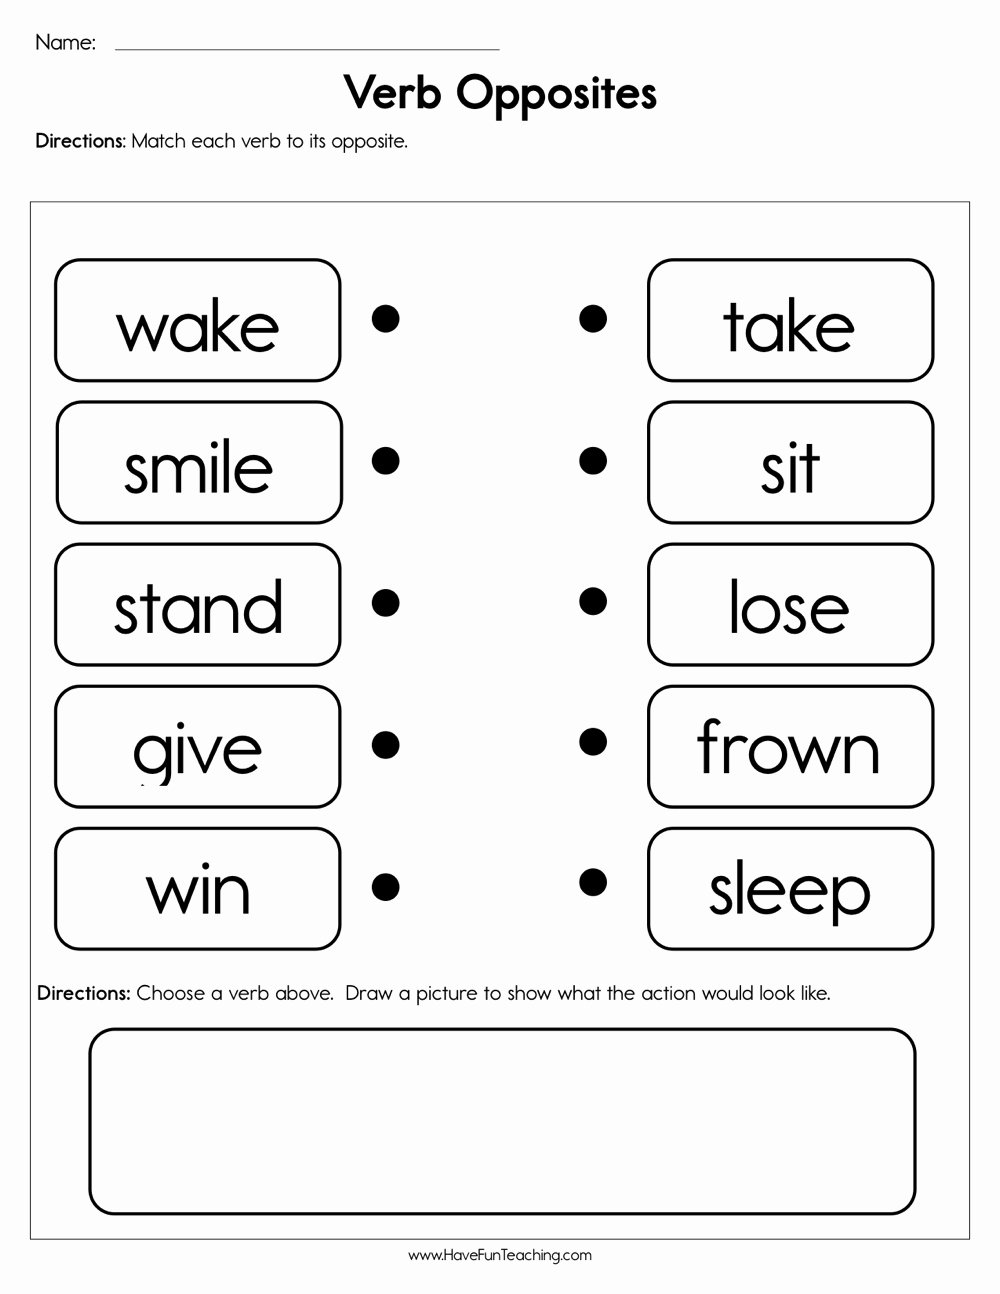 Opposite Worksheets for Preschoolers New Verb Opposites Worksheet